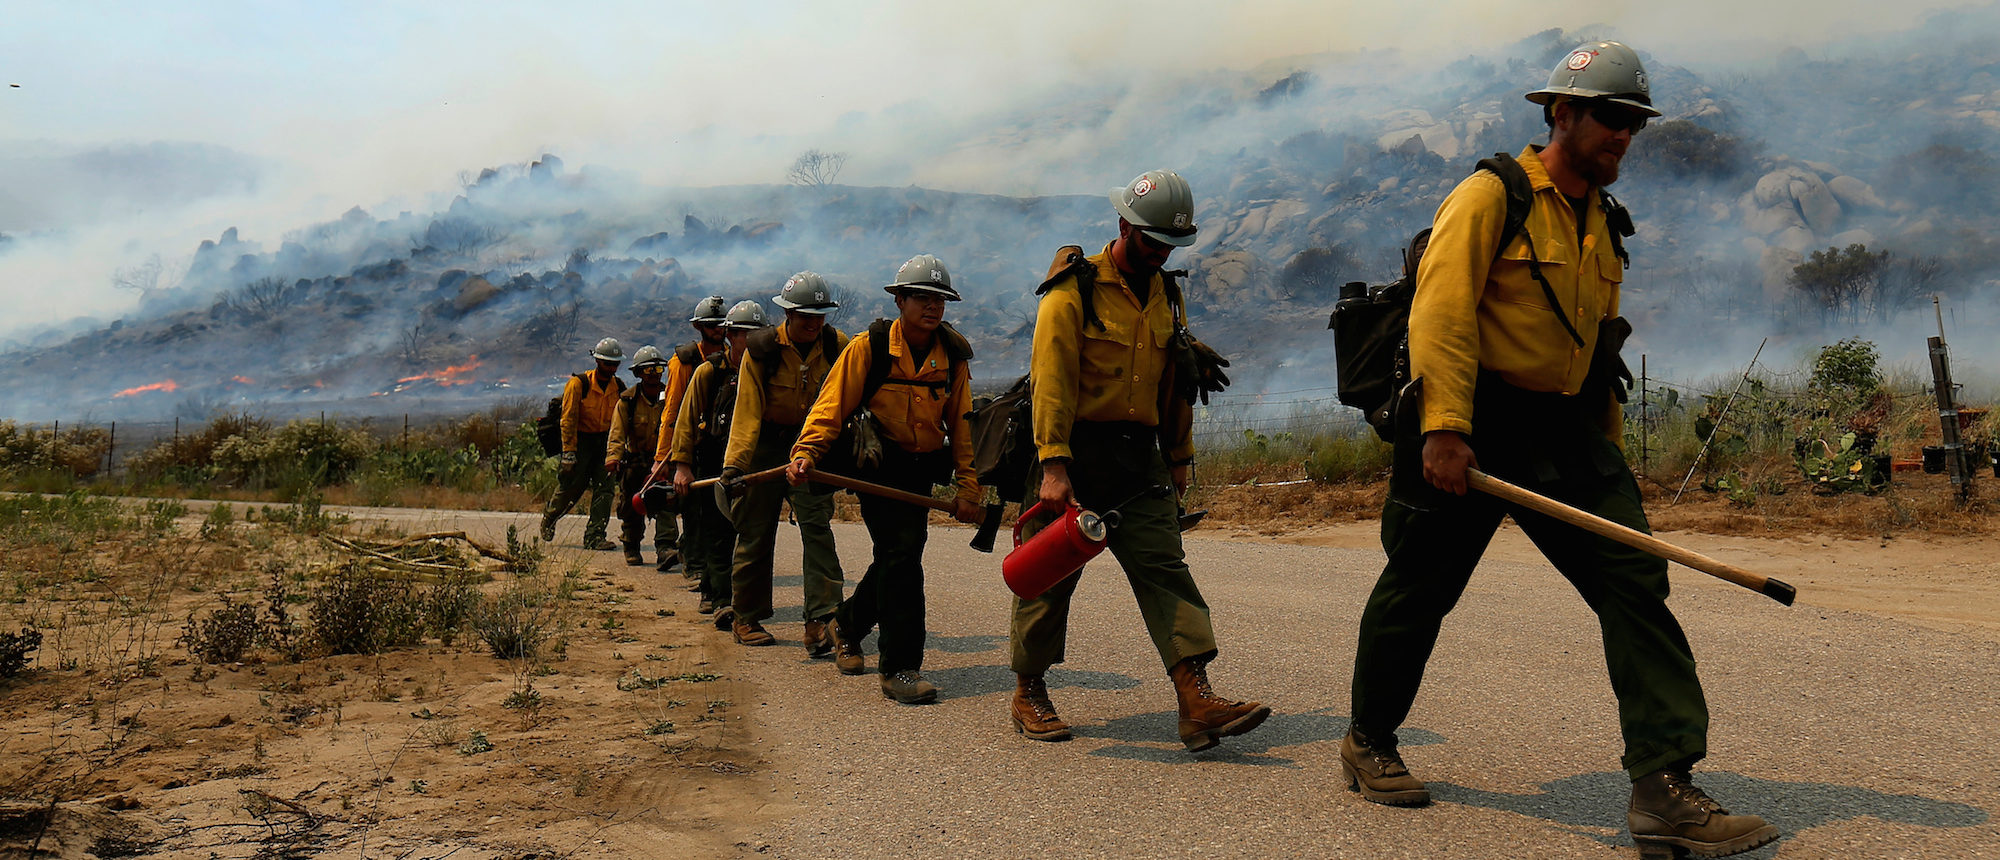 U.S. Forest Service firefighters walk to their truck after battling a wildfire near Potrero California, June 20, 2016. REUTERS/Mike Blake